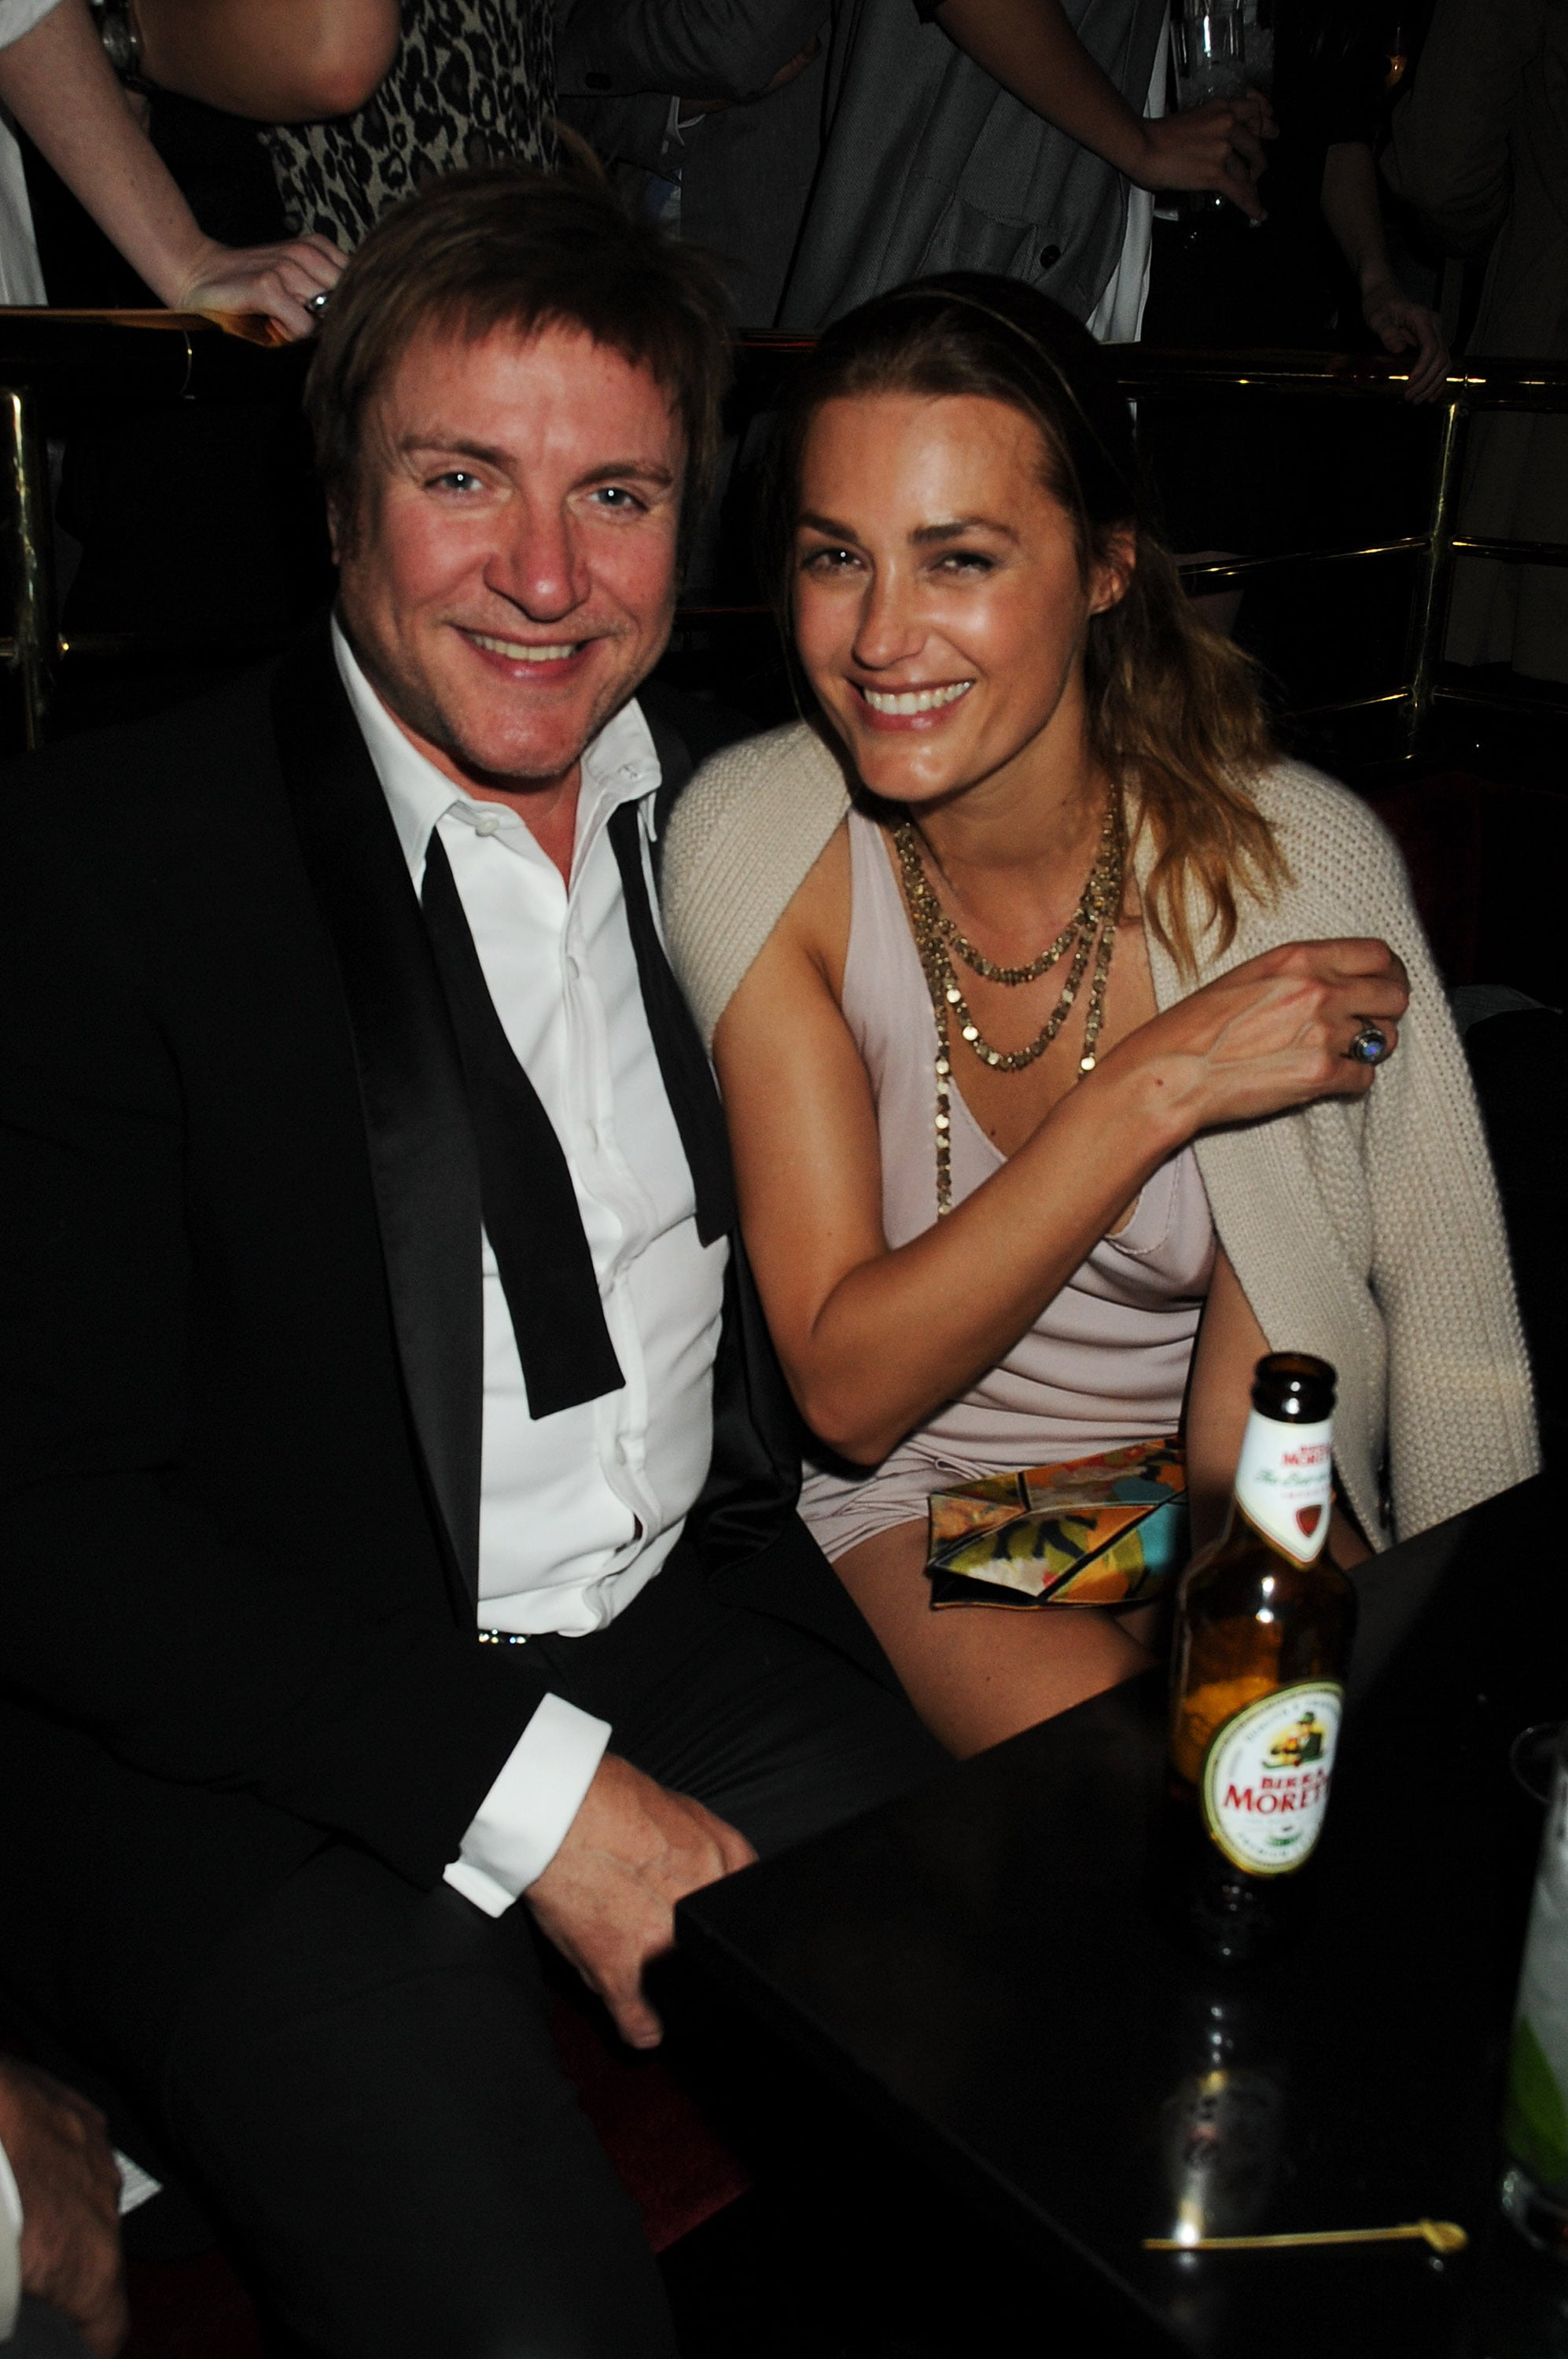 """Duran Duran lead singer Simon Le Bon has been married to supermodel Yasmin Le Bon since 1985. The couple have three daughters and have even worked together: Yasmin is part of a group of models who star in the music video for Duran Duran's song """"Girl Panic."""""""